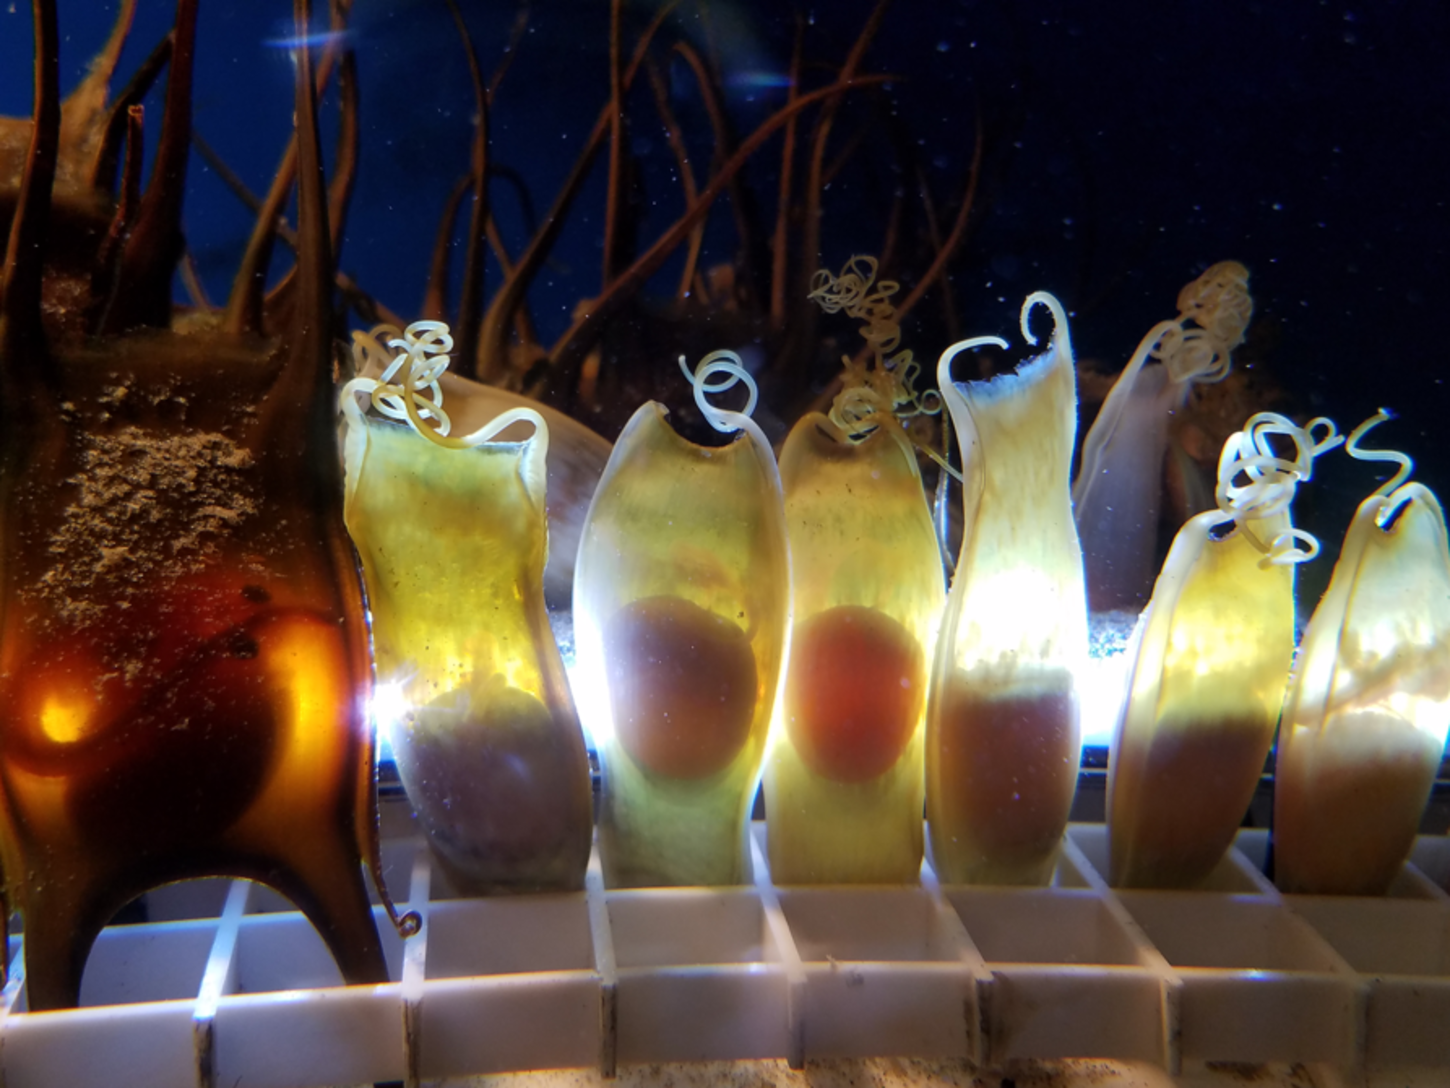 Skate and shark egg cases at Save The Bay's Exploration Center and Aquarium